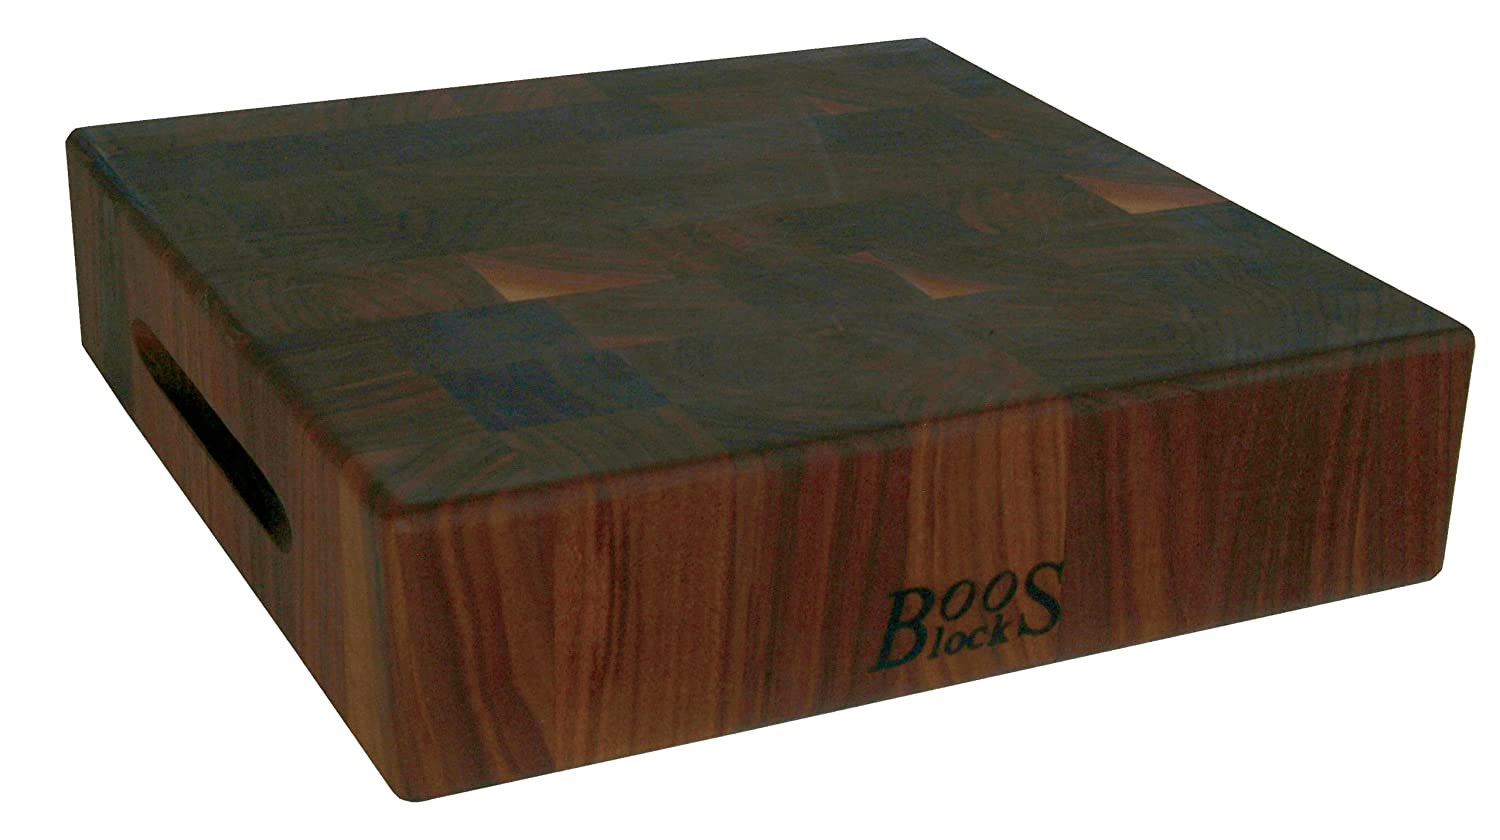 John Boos Walnut Wood Reversible Butcher Block Cutting Board